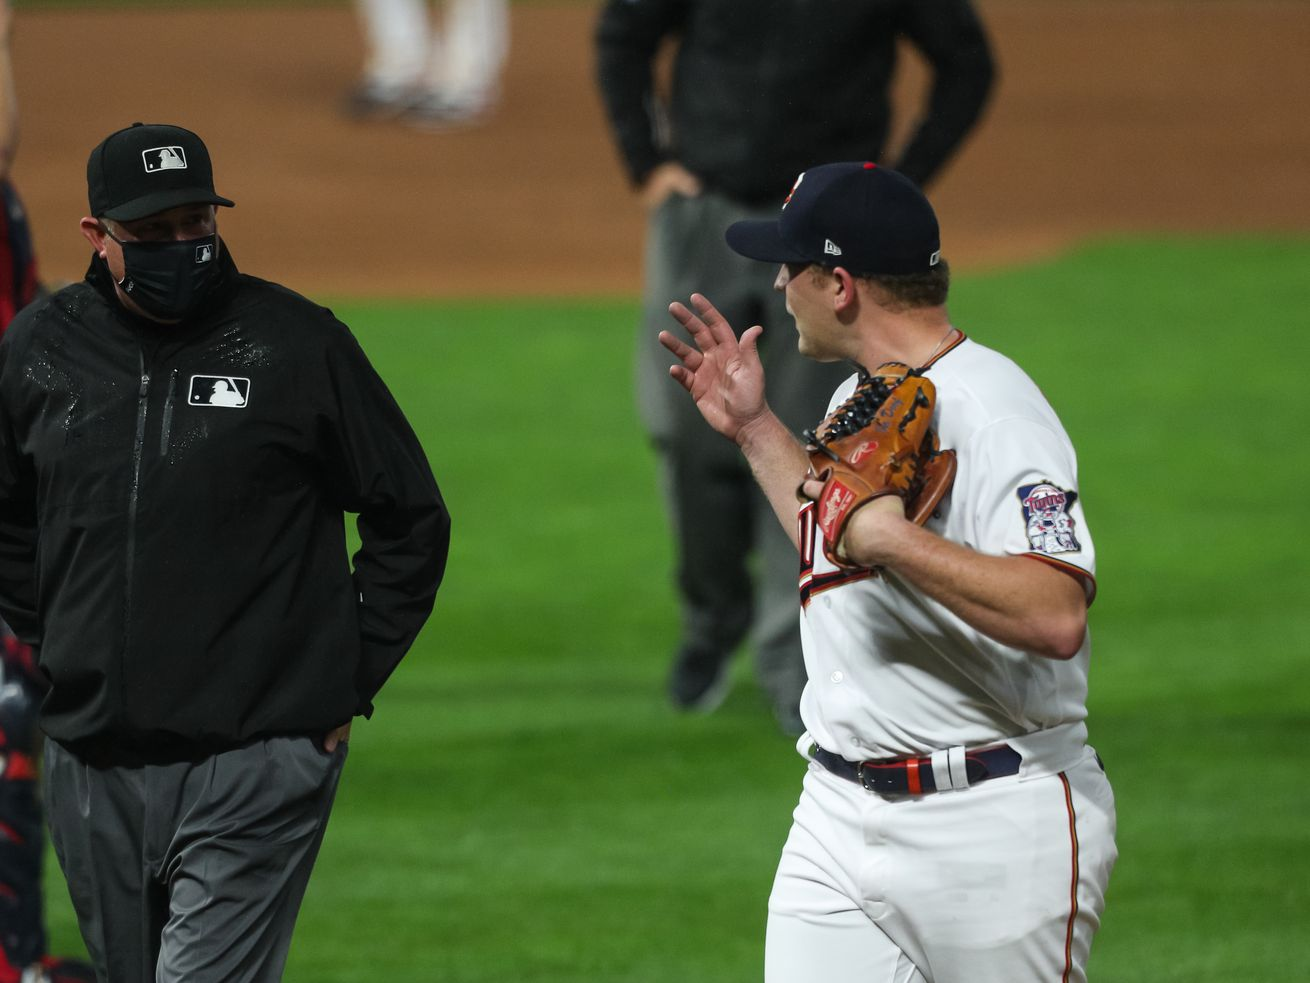 Tyler Duffey of the Twins argues with umpire Chad Whitson after being ejected for throwing a pitch behind Yermin Mercedes of the White Sox Tuesday in Minneapolis.